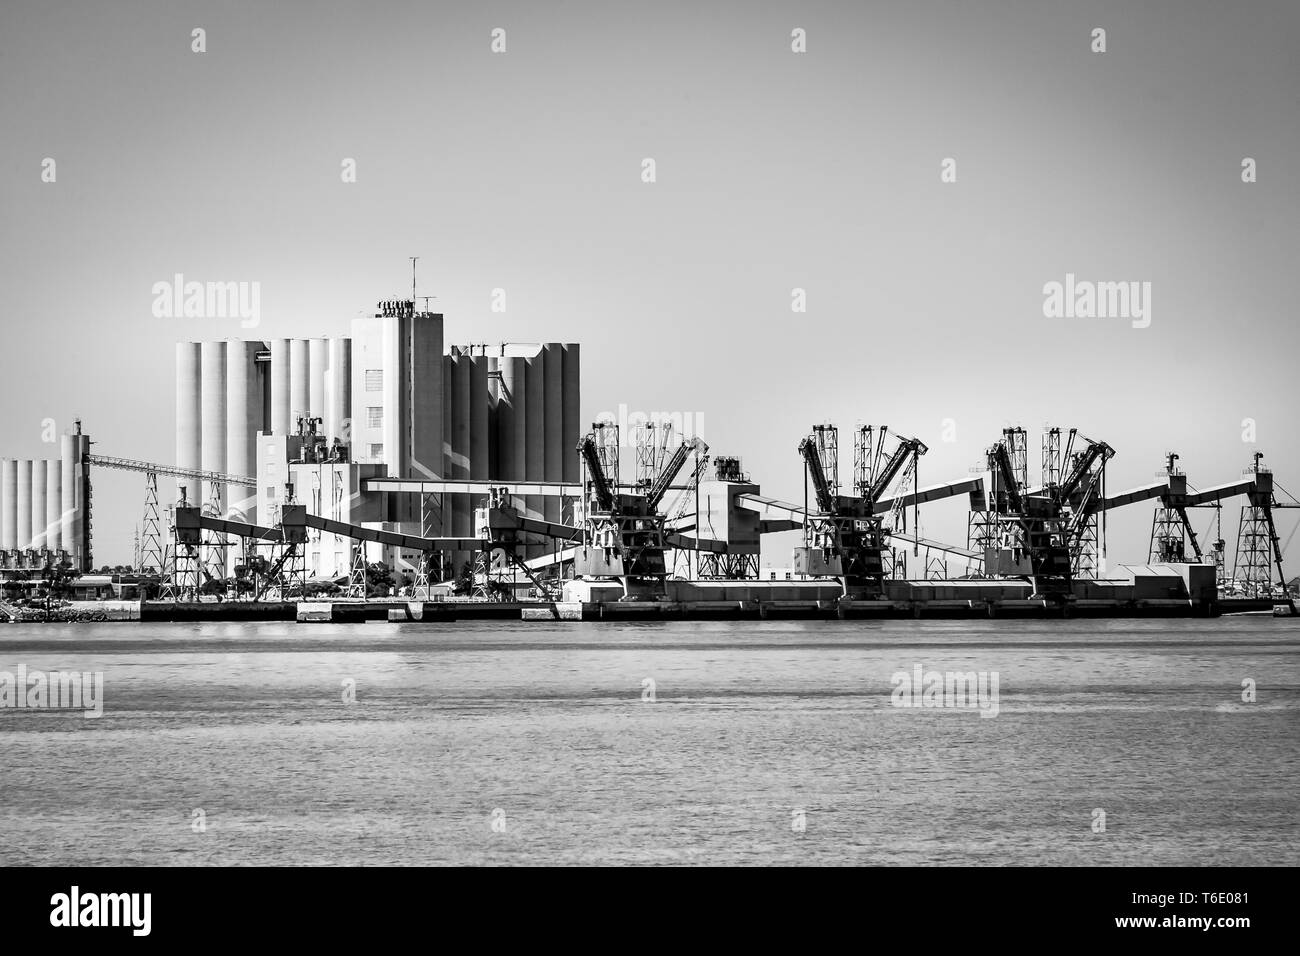 Industry in Lisbon, Portugal - Stock Image